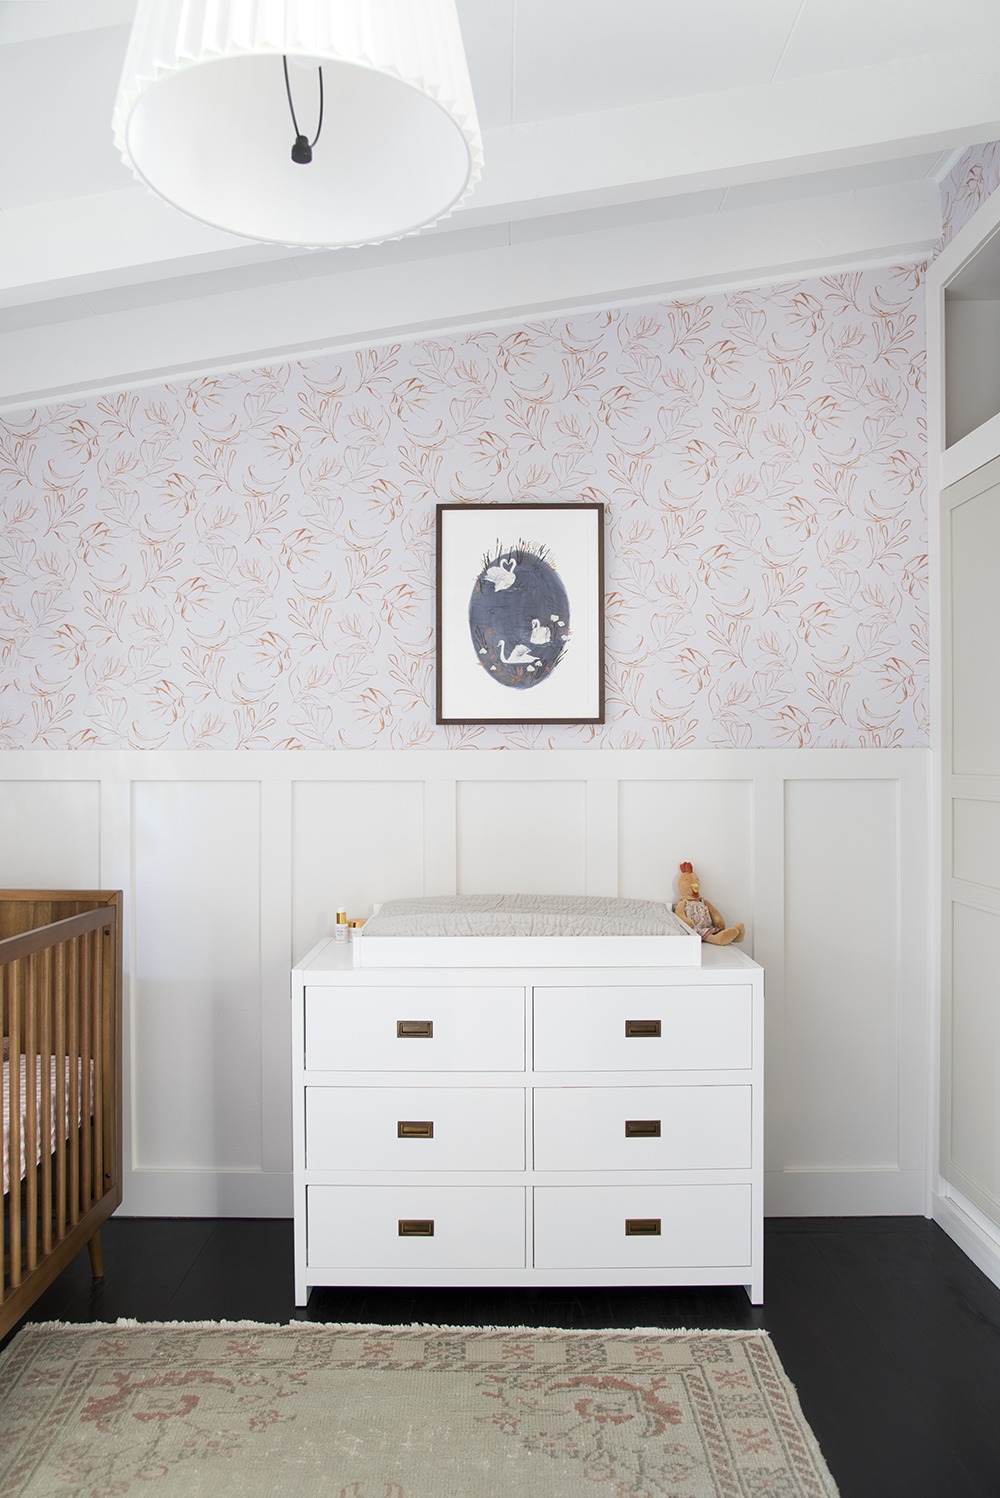 How to Install Peel-and-Stick Wallpaper - roomfortuesday.com